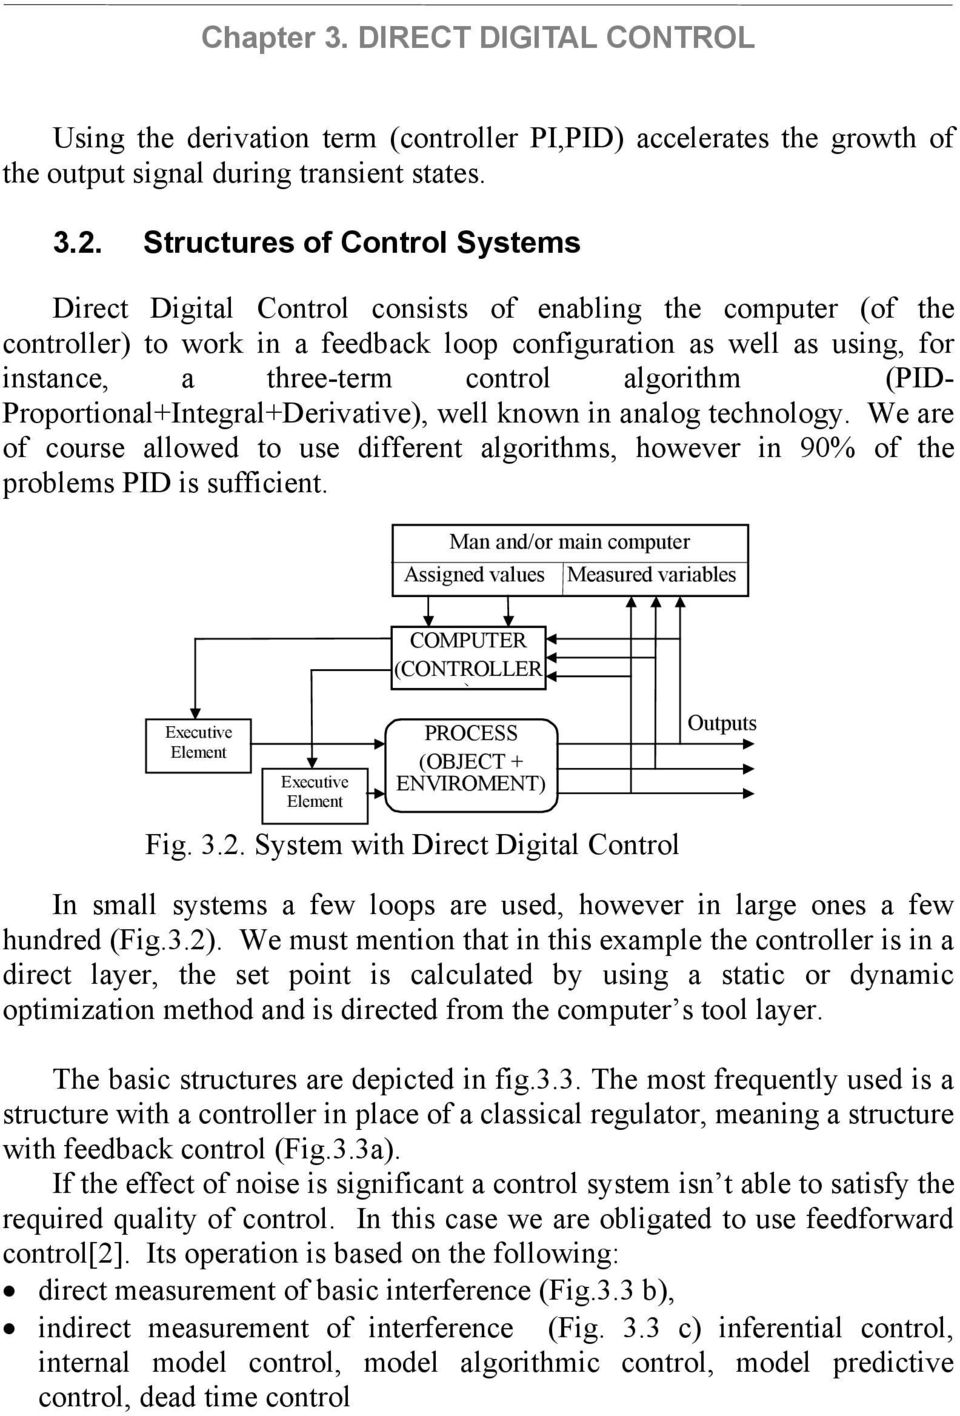 . Structures of Control Systems Direct Digital Control consists of enabling the computer (of the controller) to work in a feedback loop configuration as well as using, for instance, a three-term